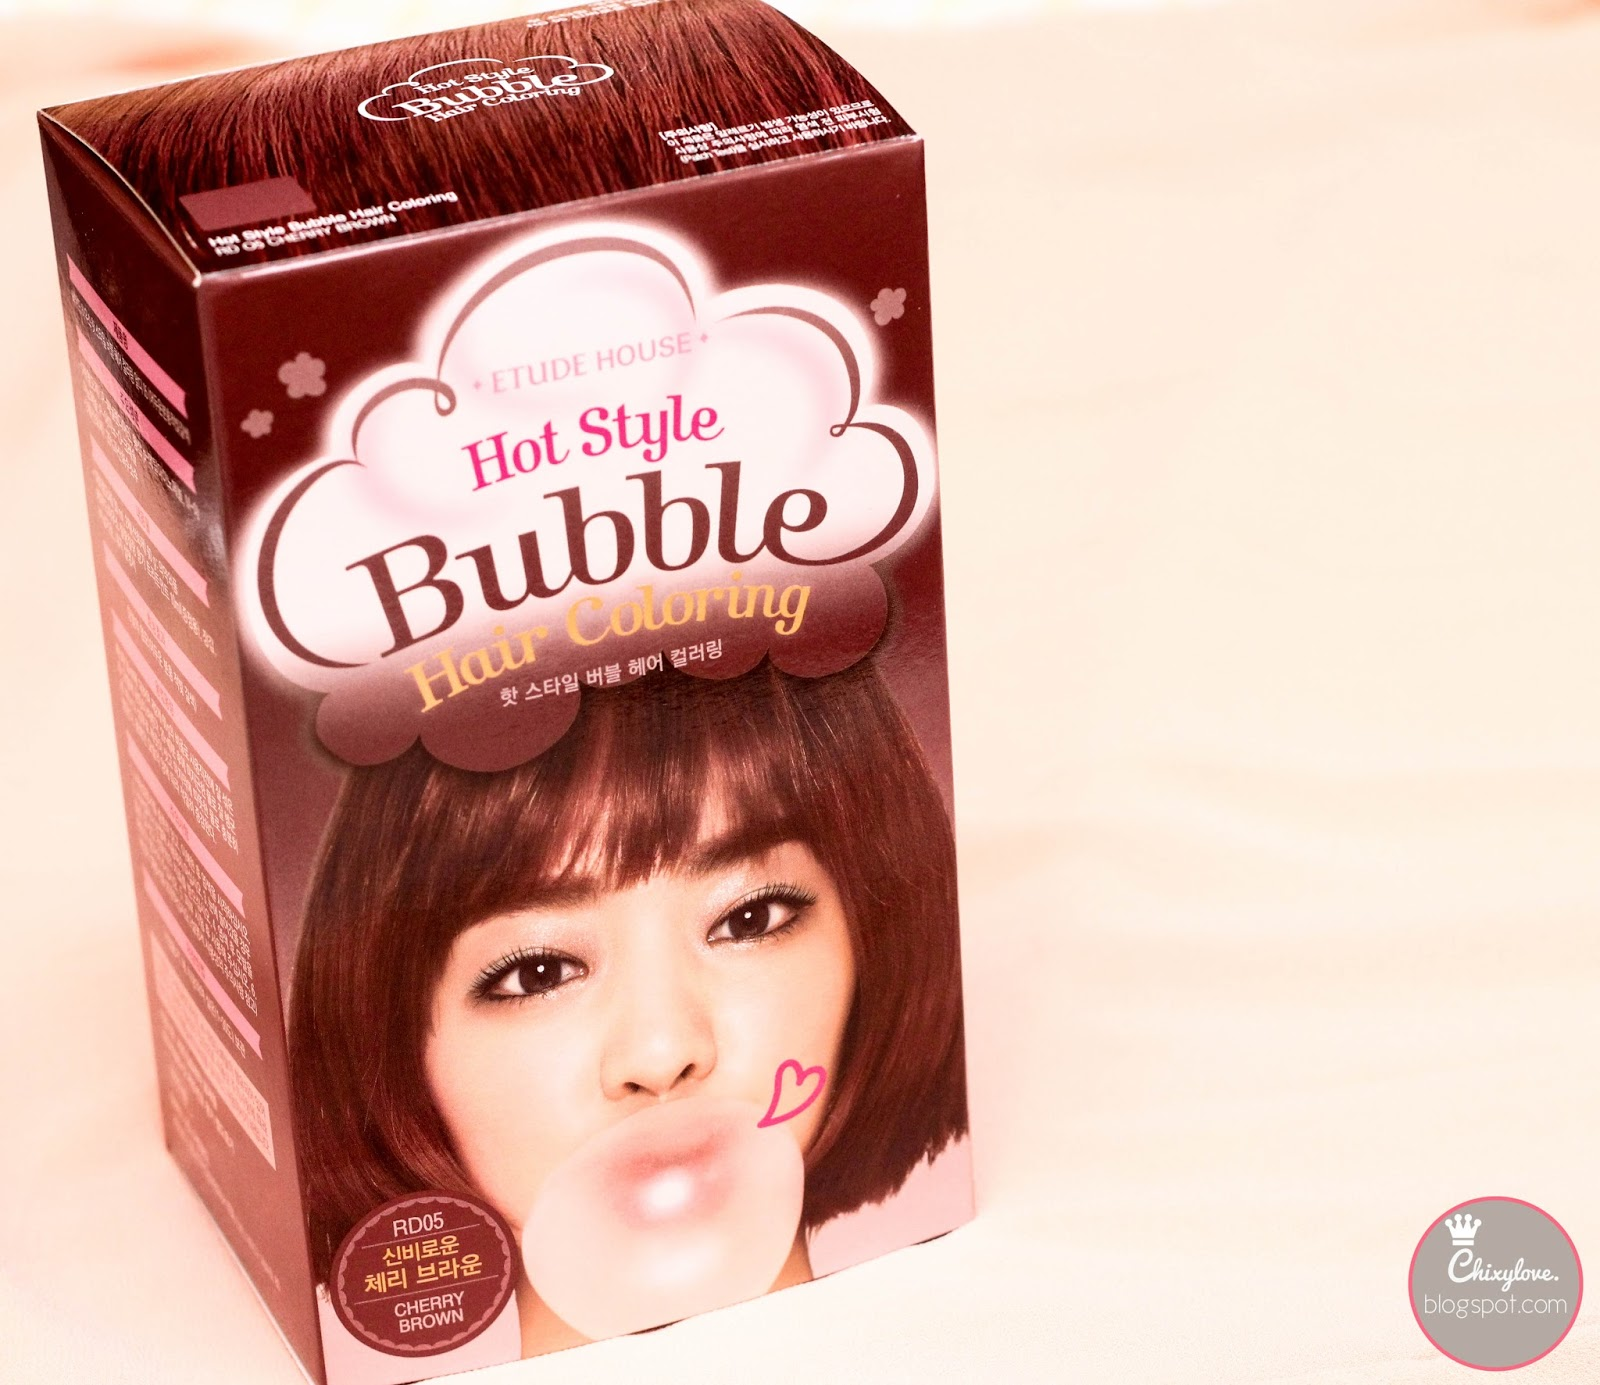 Make Up And Hair (MUAH) - Etude House Bubble Hair Coloring in Cherry ...